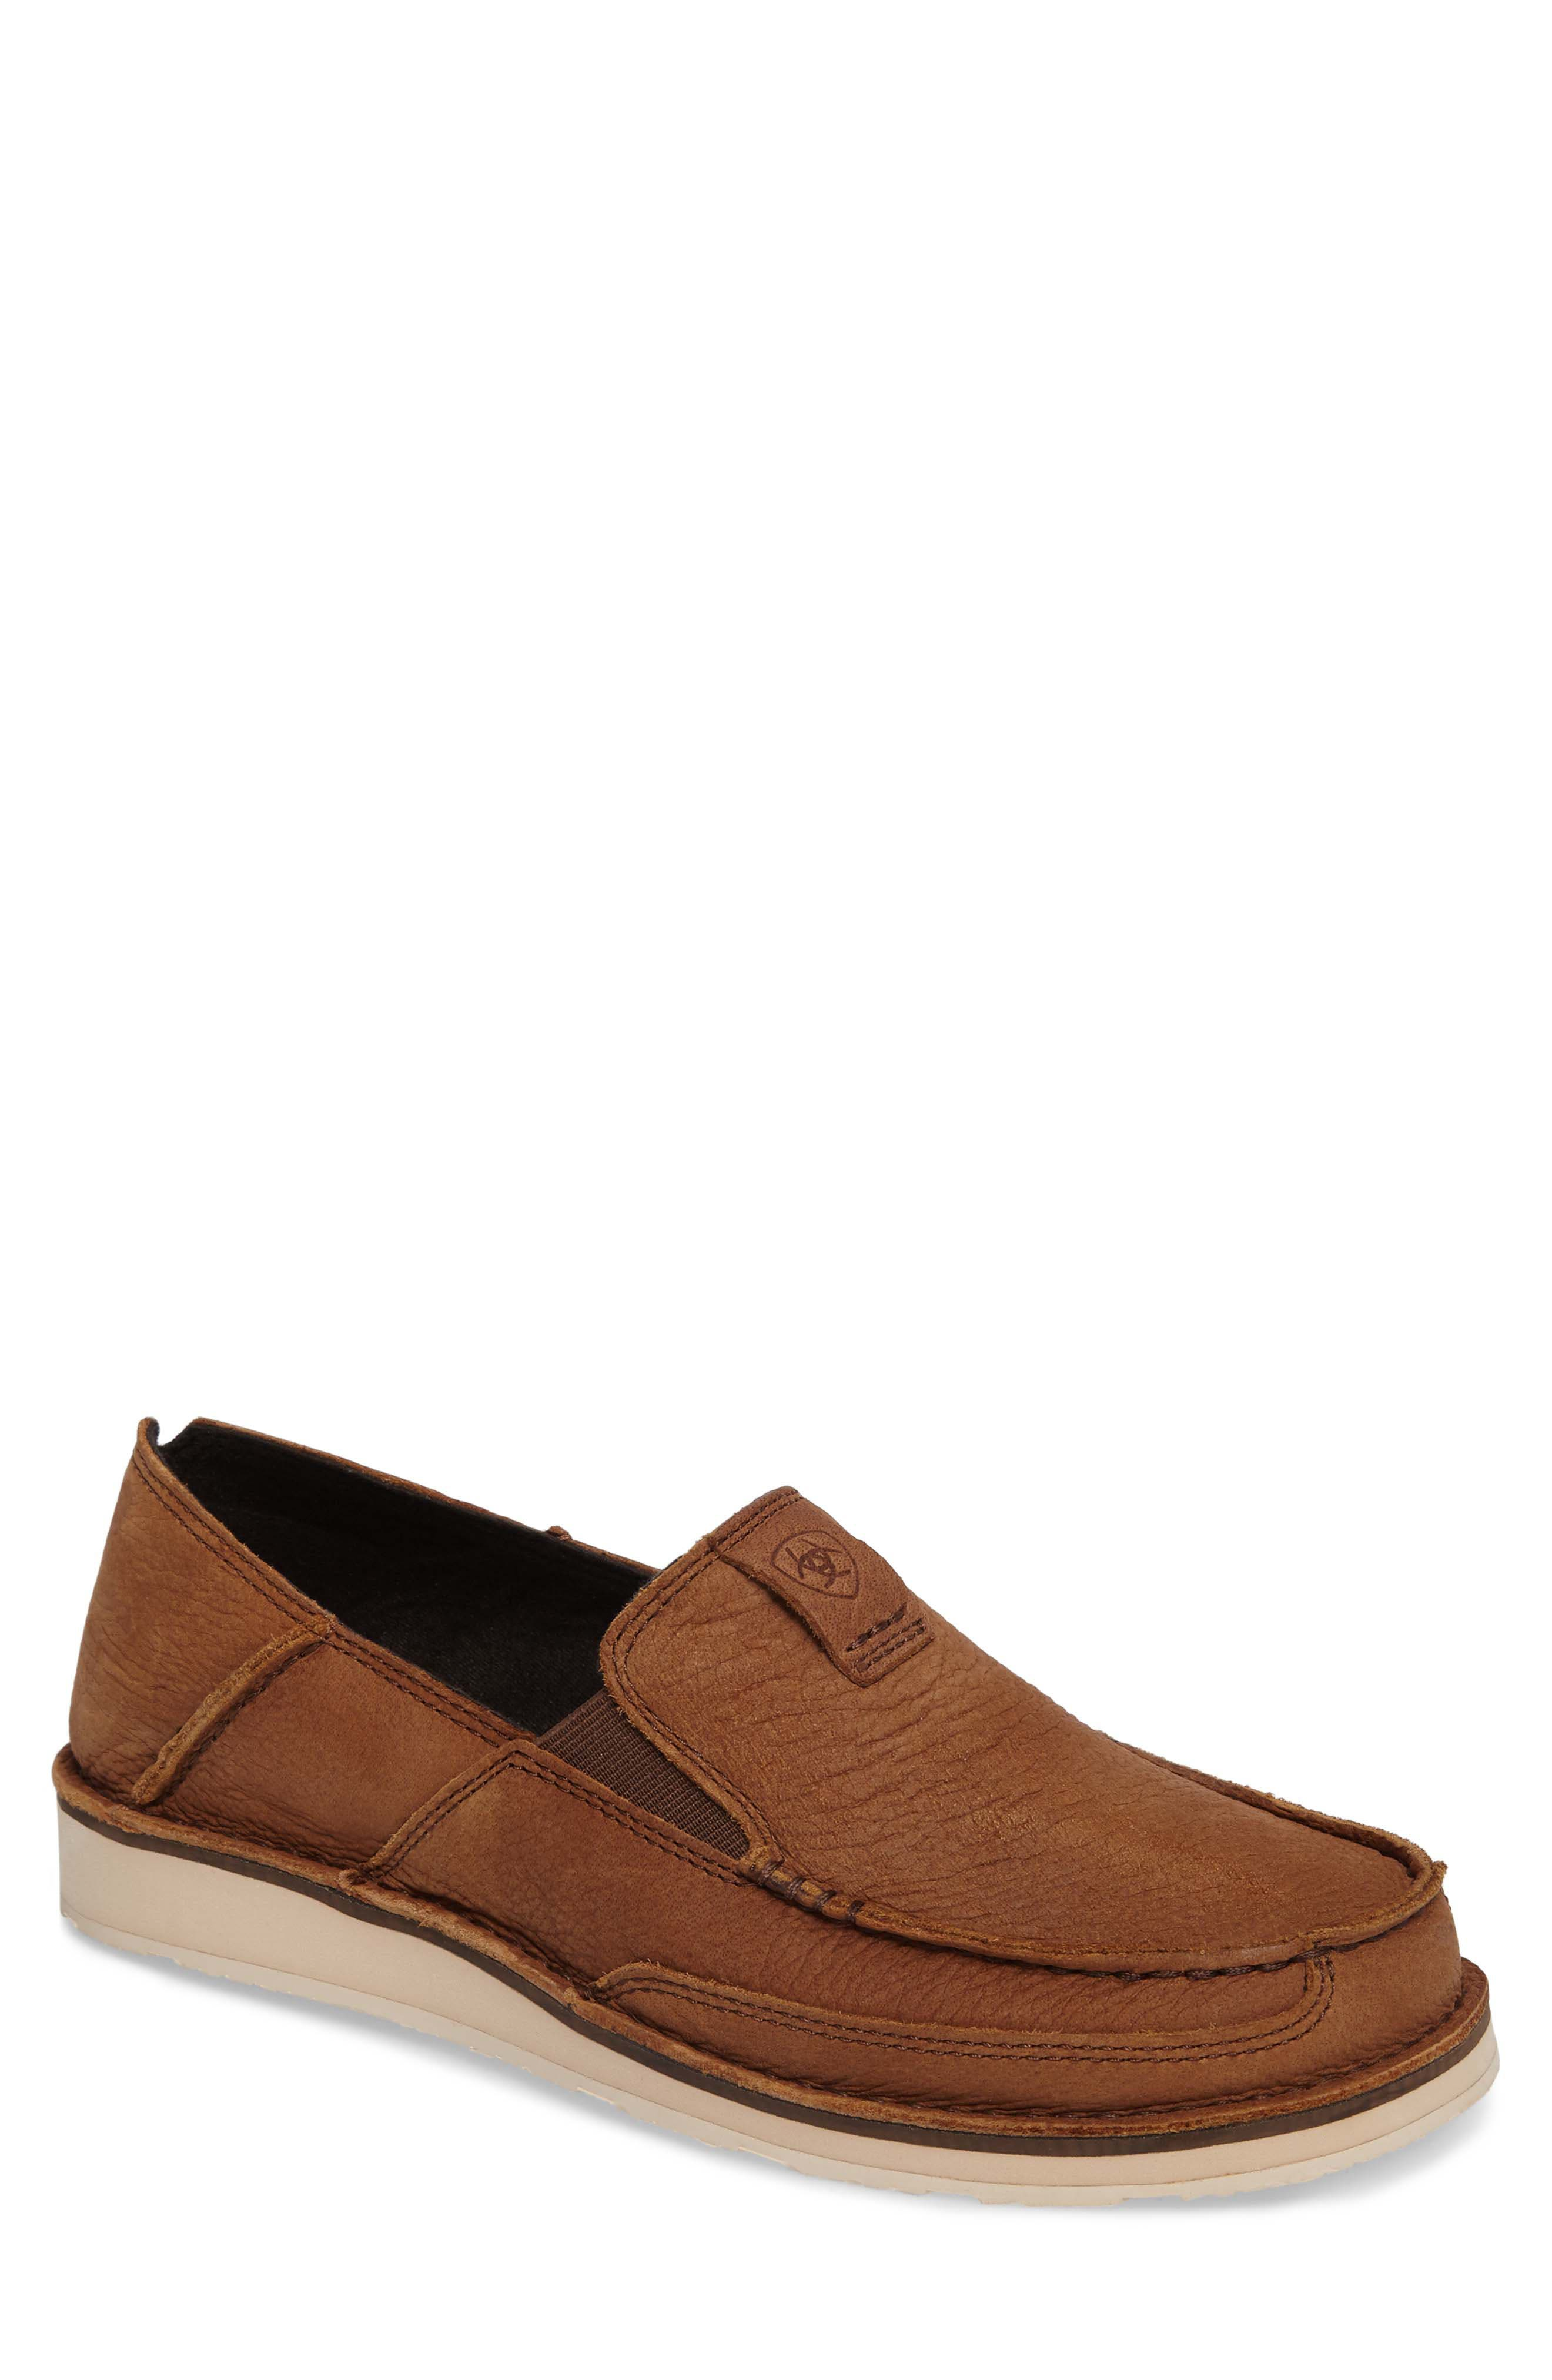 Ariat 'Cruiser' Slip-On (Men)